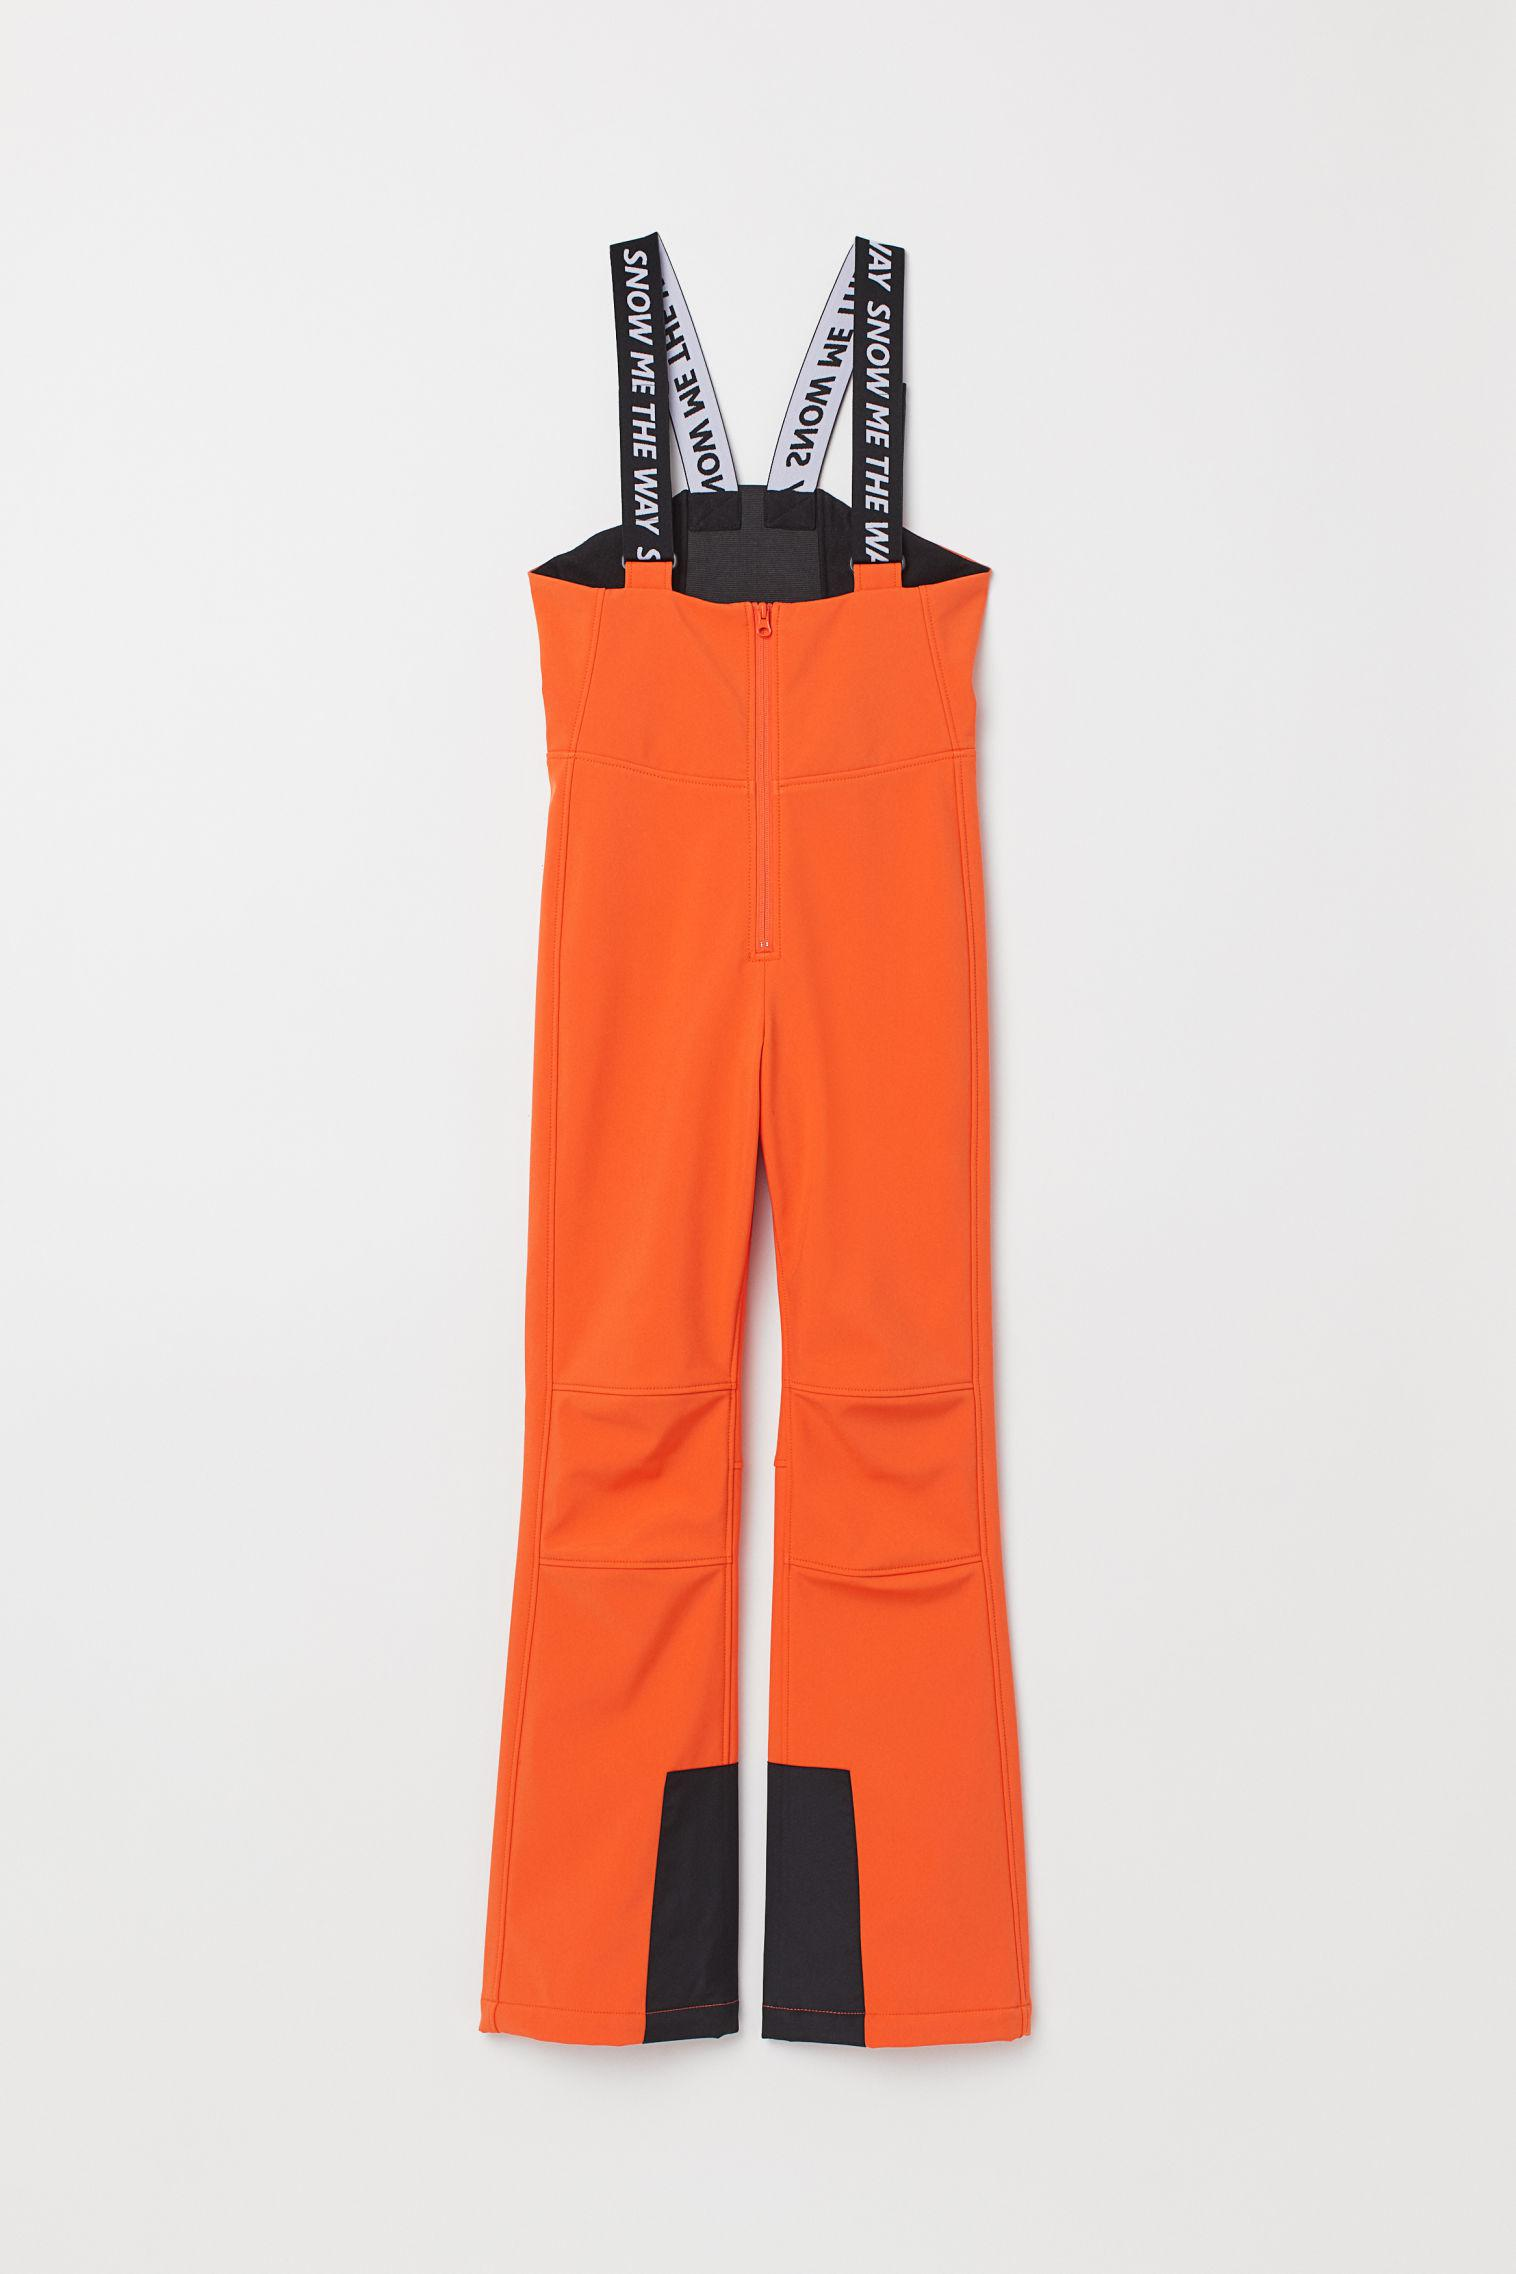 En Orange H De Bretelles À Lyst amp;m Pantalon Coloris Ski wT0qxOf